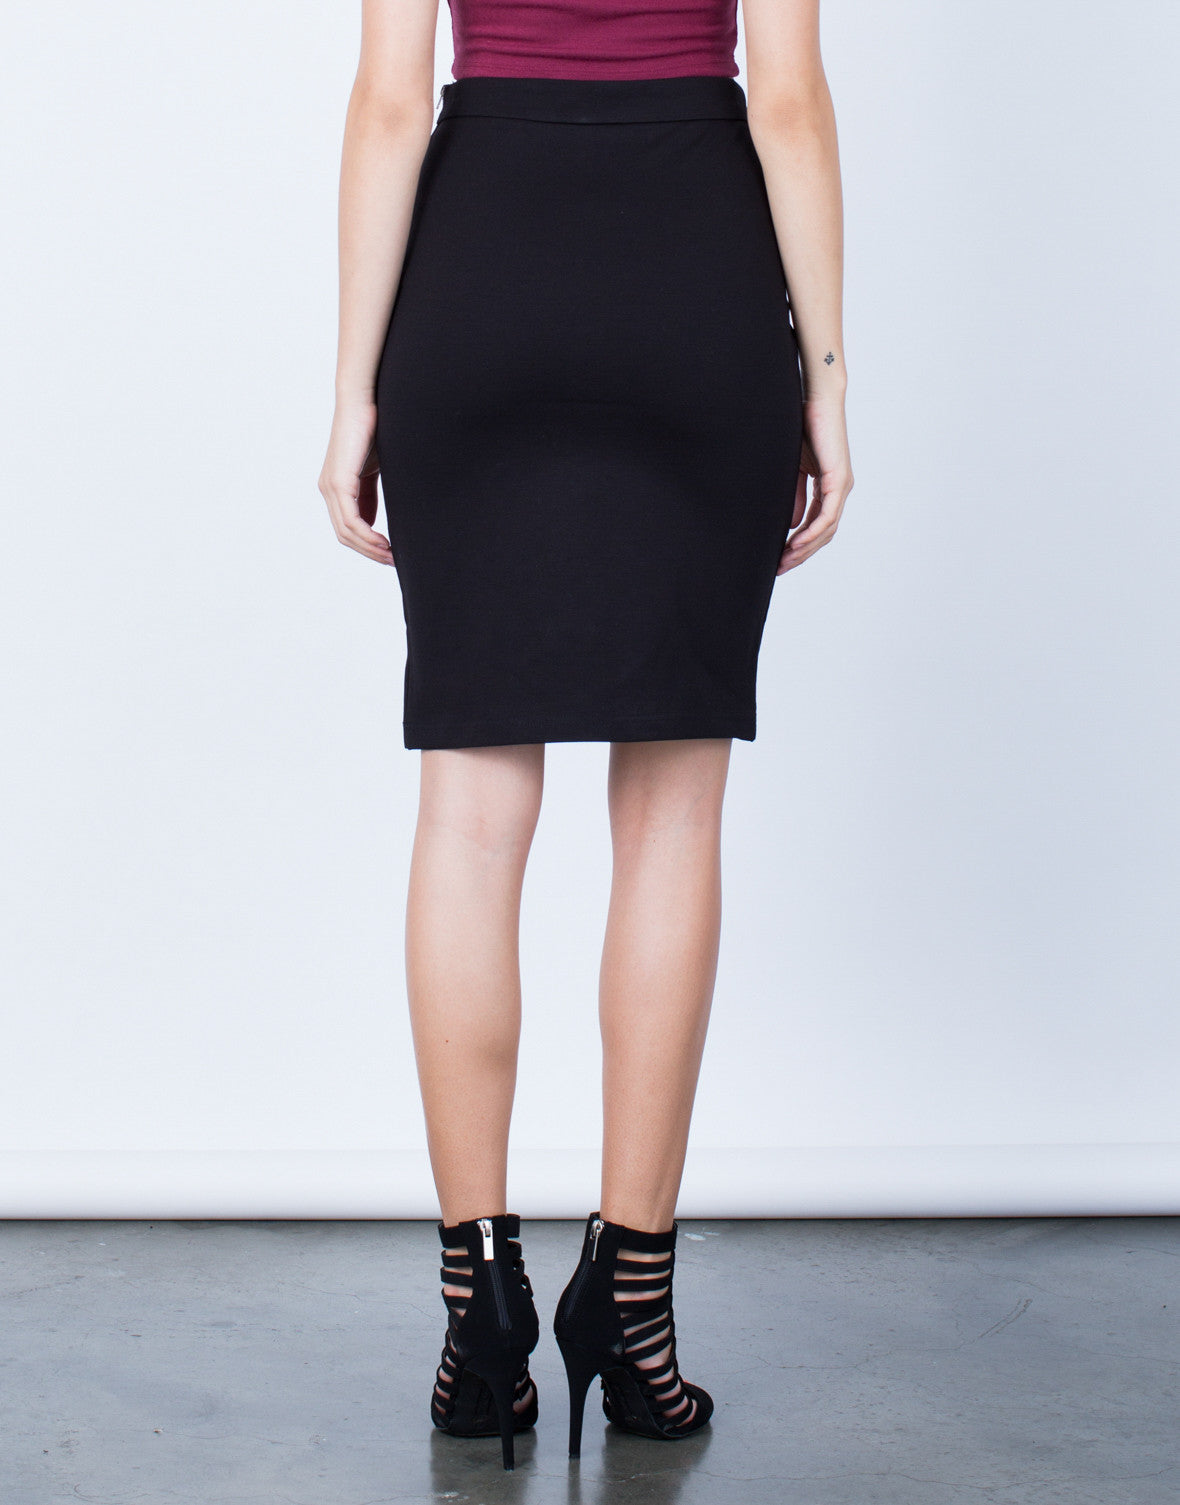 Back View of Side Zipper Pencil Skirt